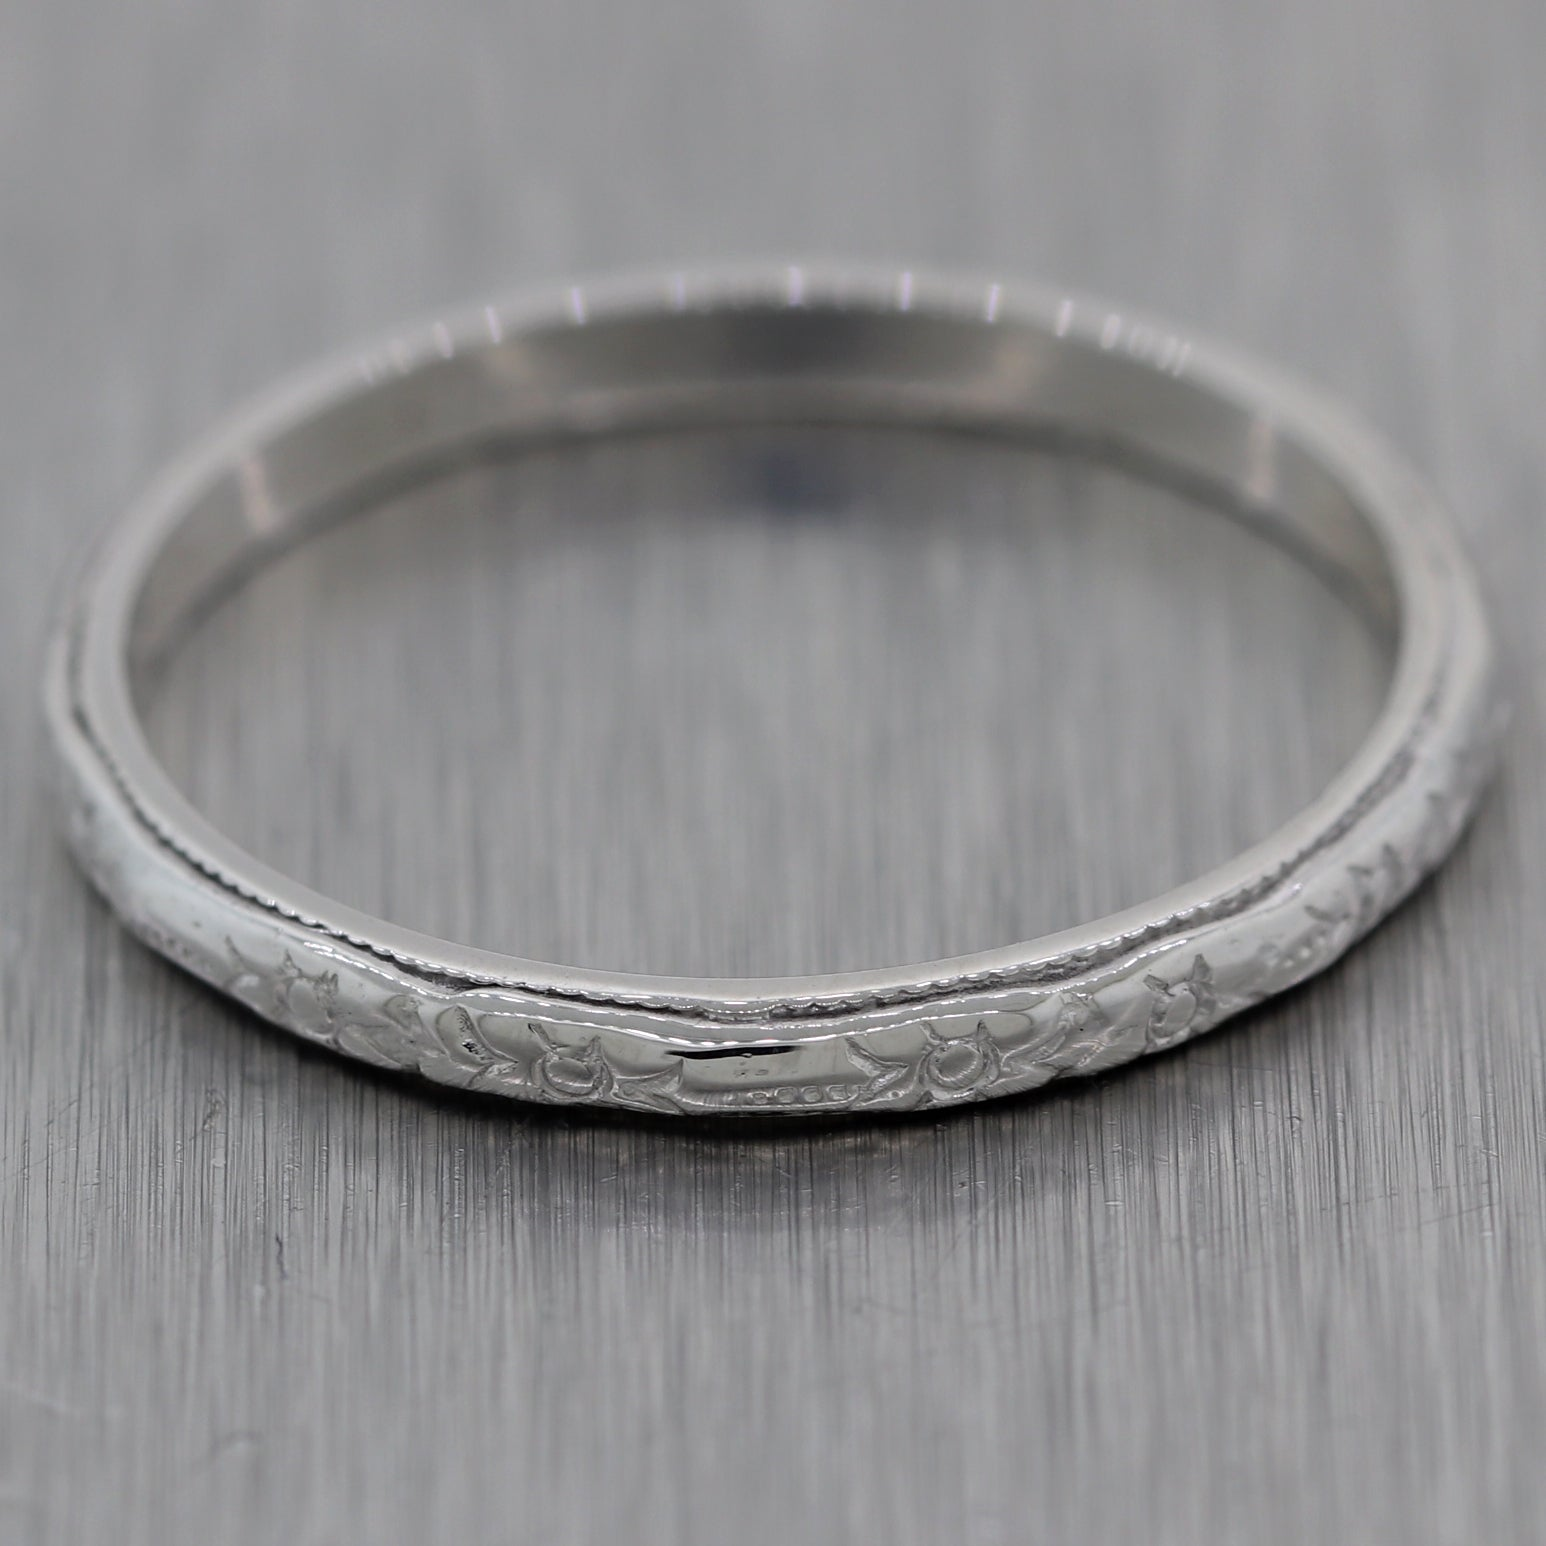 1930's Antique Art Deco 18k White Gold Etched Wedding Band Ring